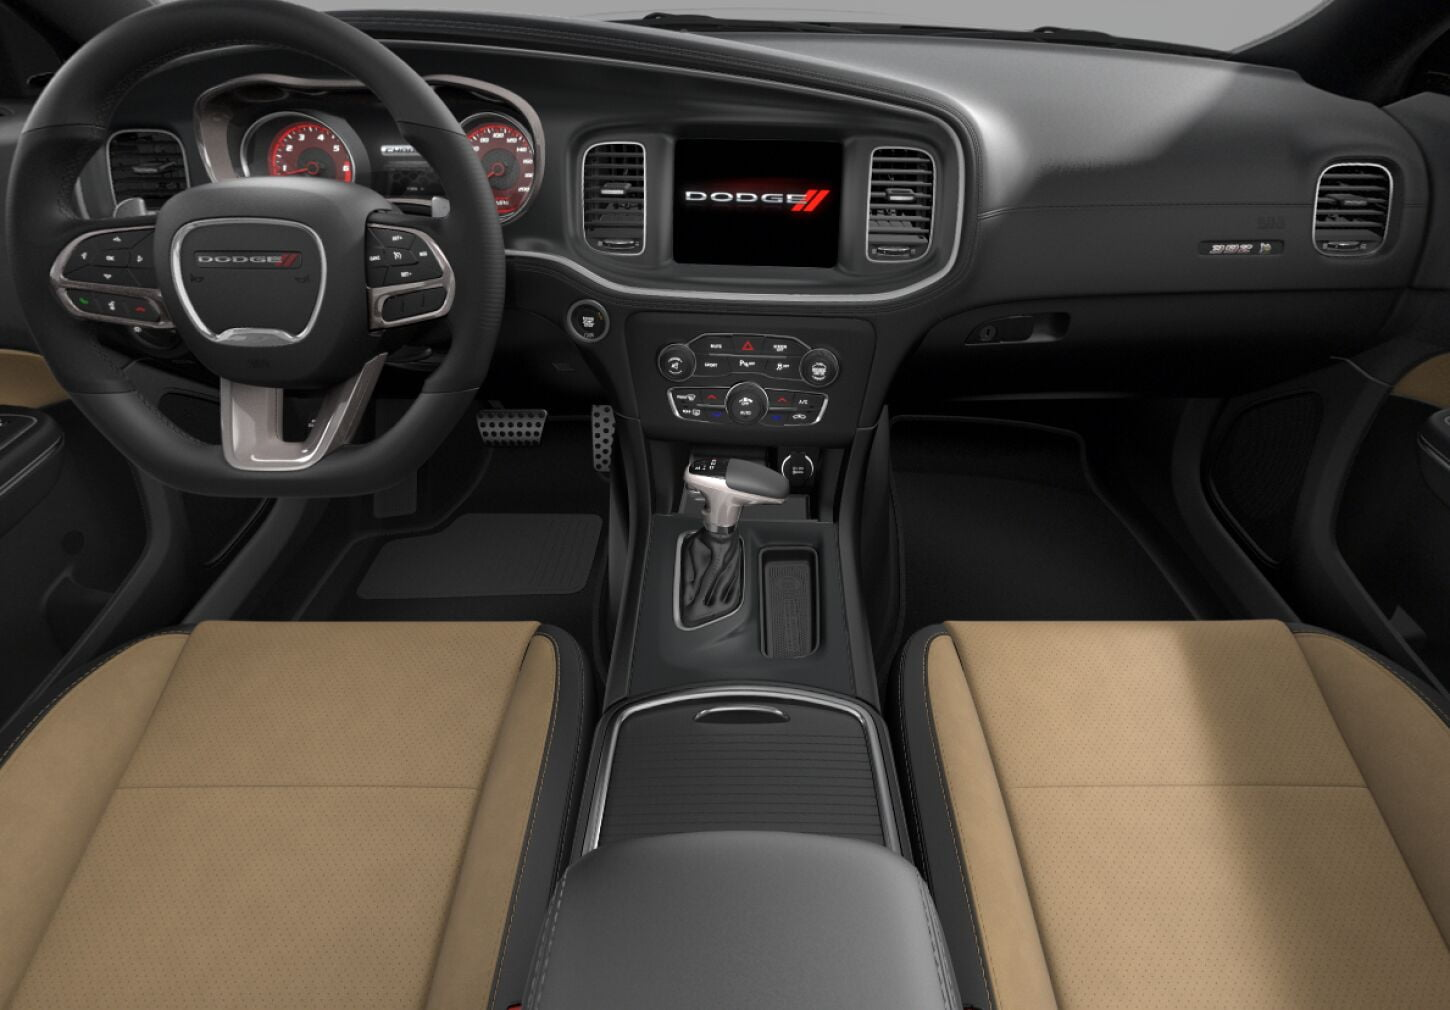 2020 Charger scat pack interior caramel